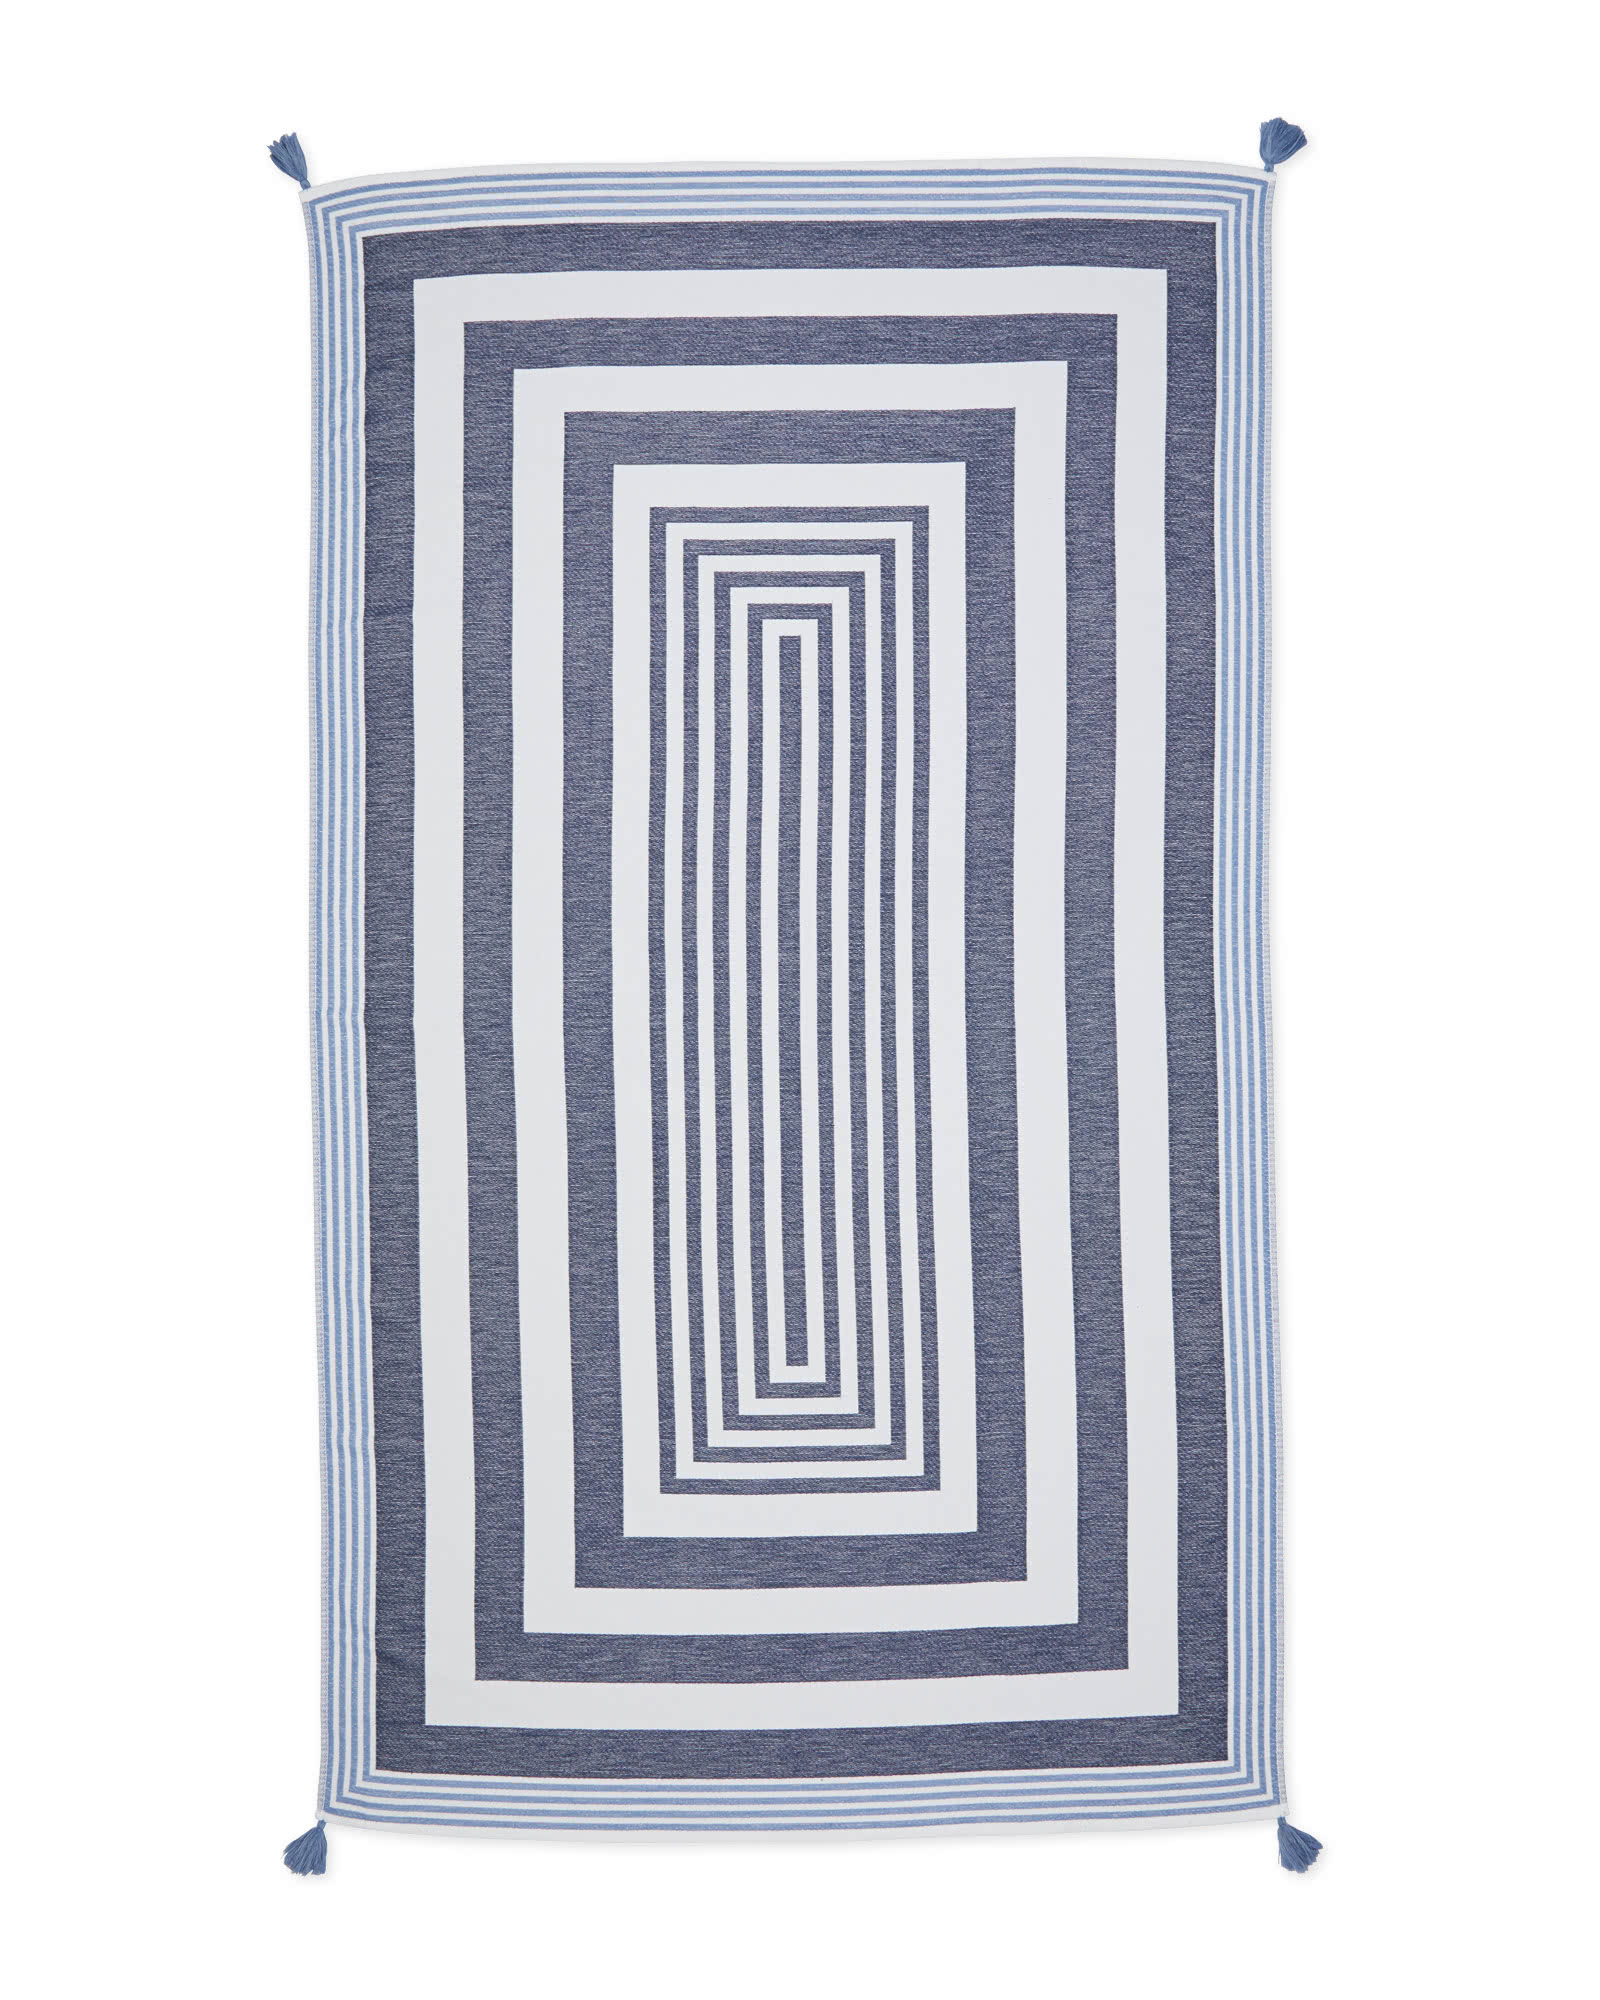 Umbria Beach Towel, Midnight